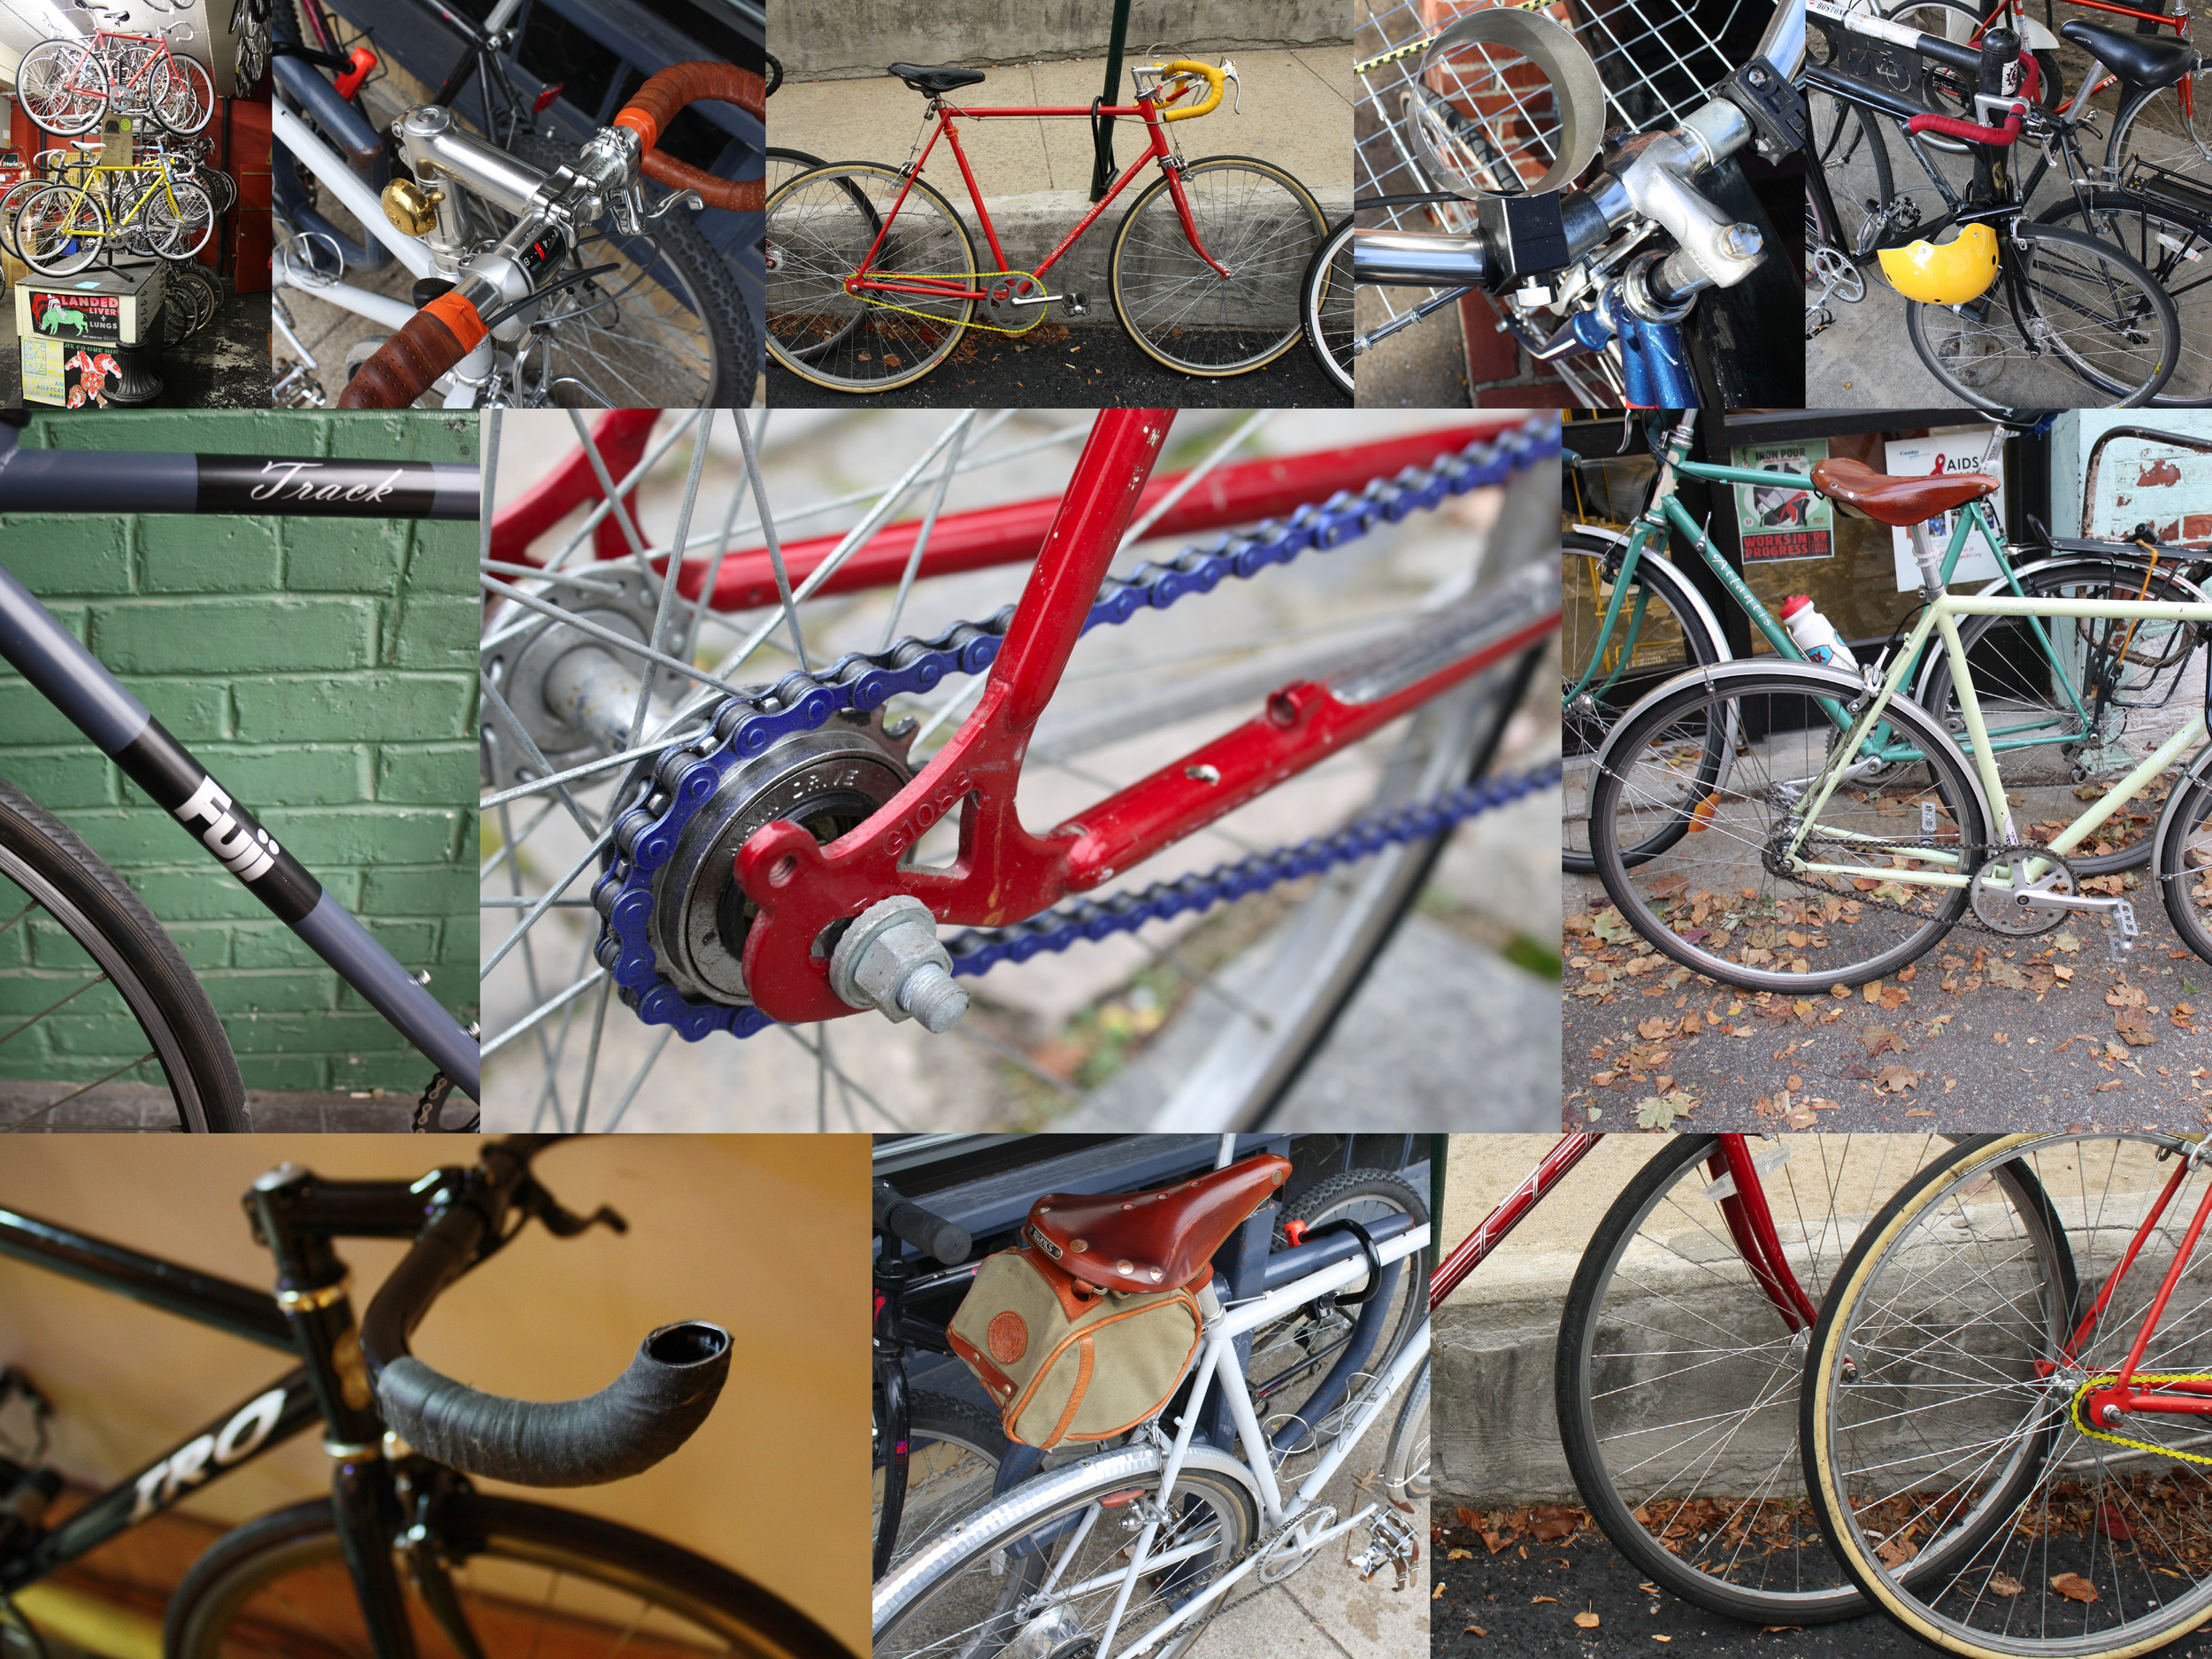 Examples of colors and materials on bike frames and accessories